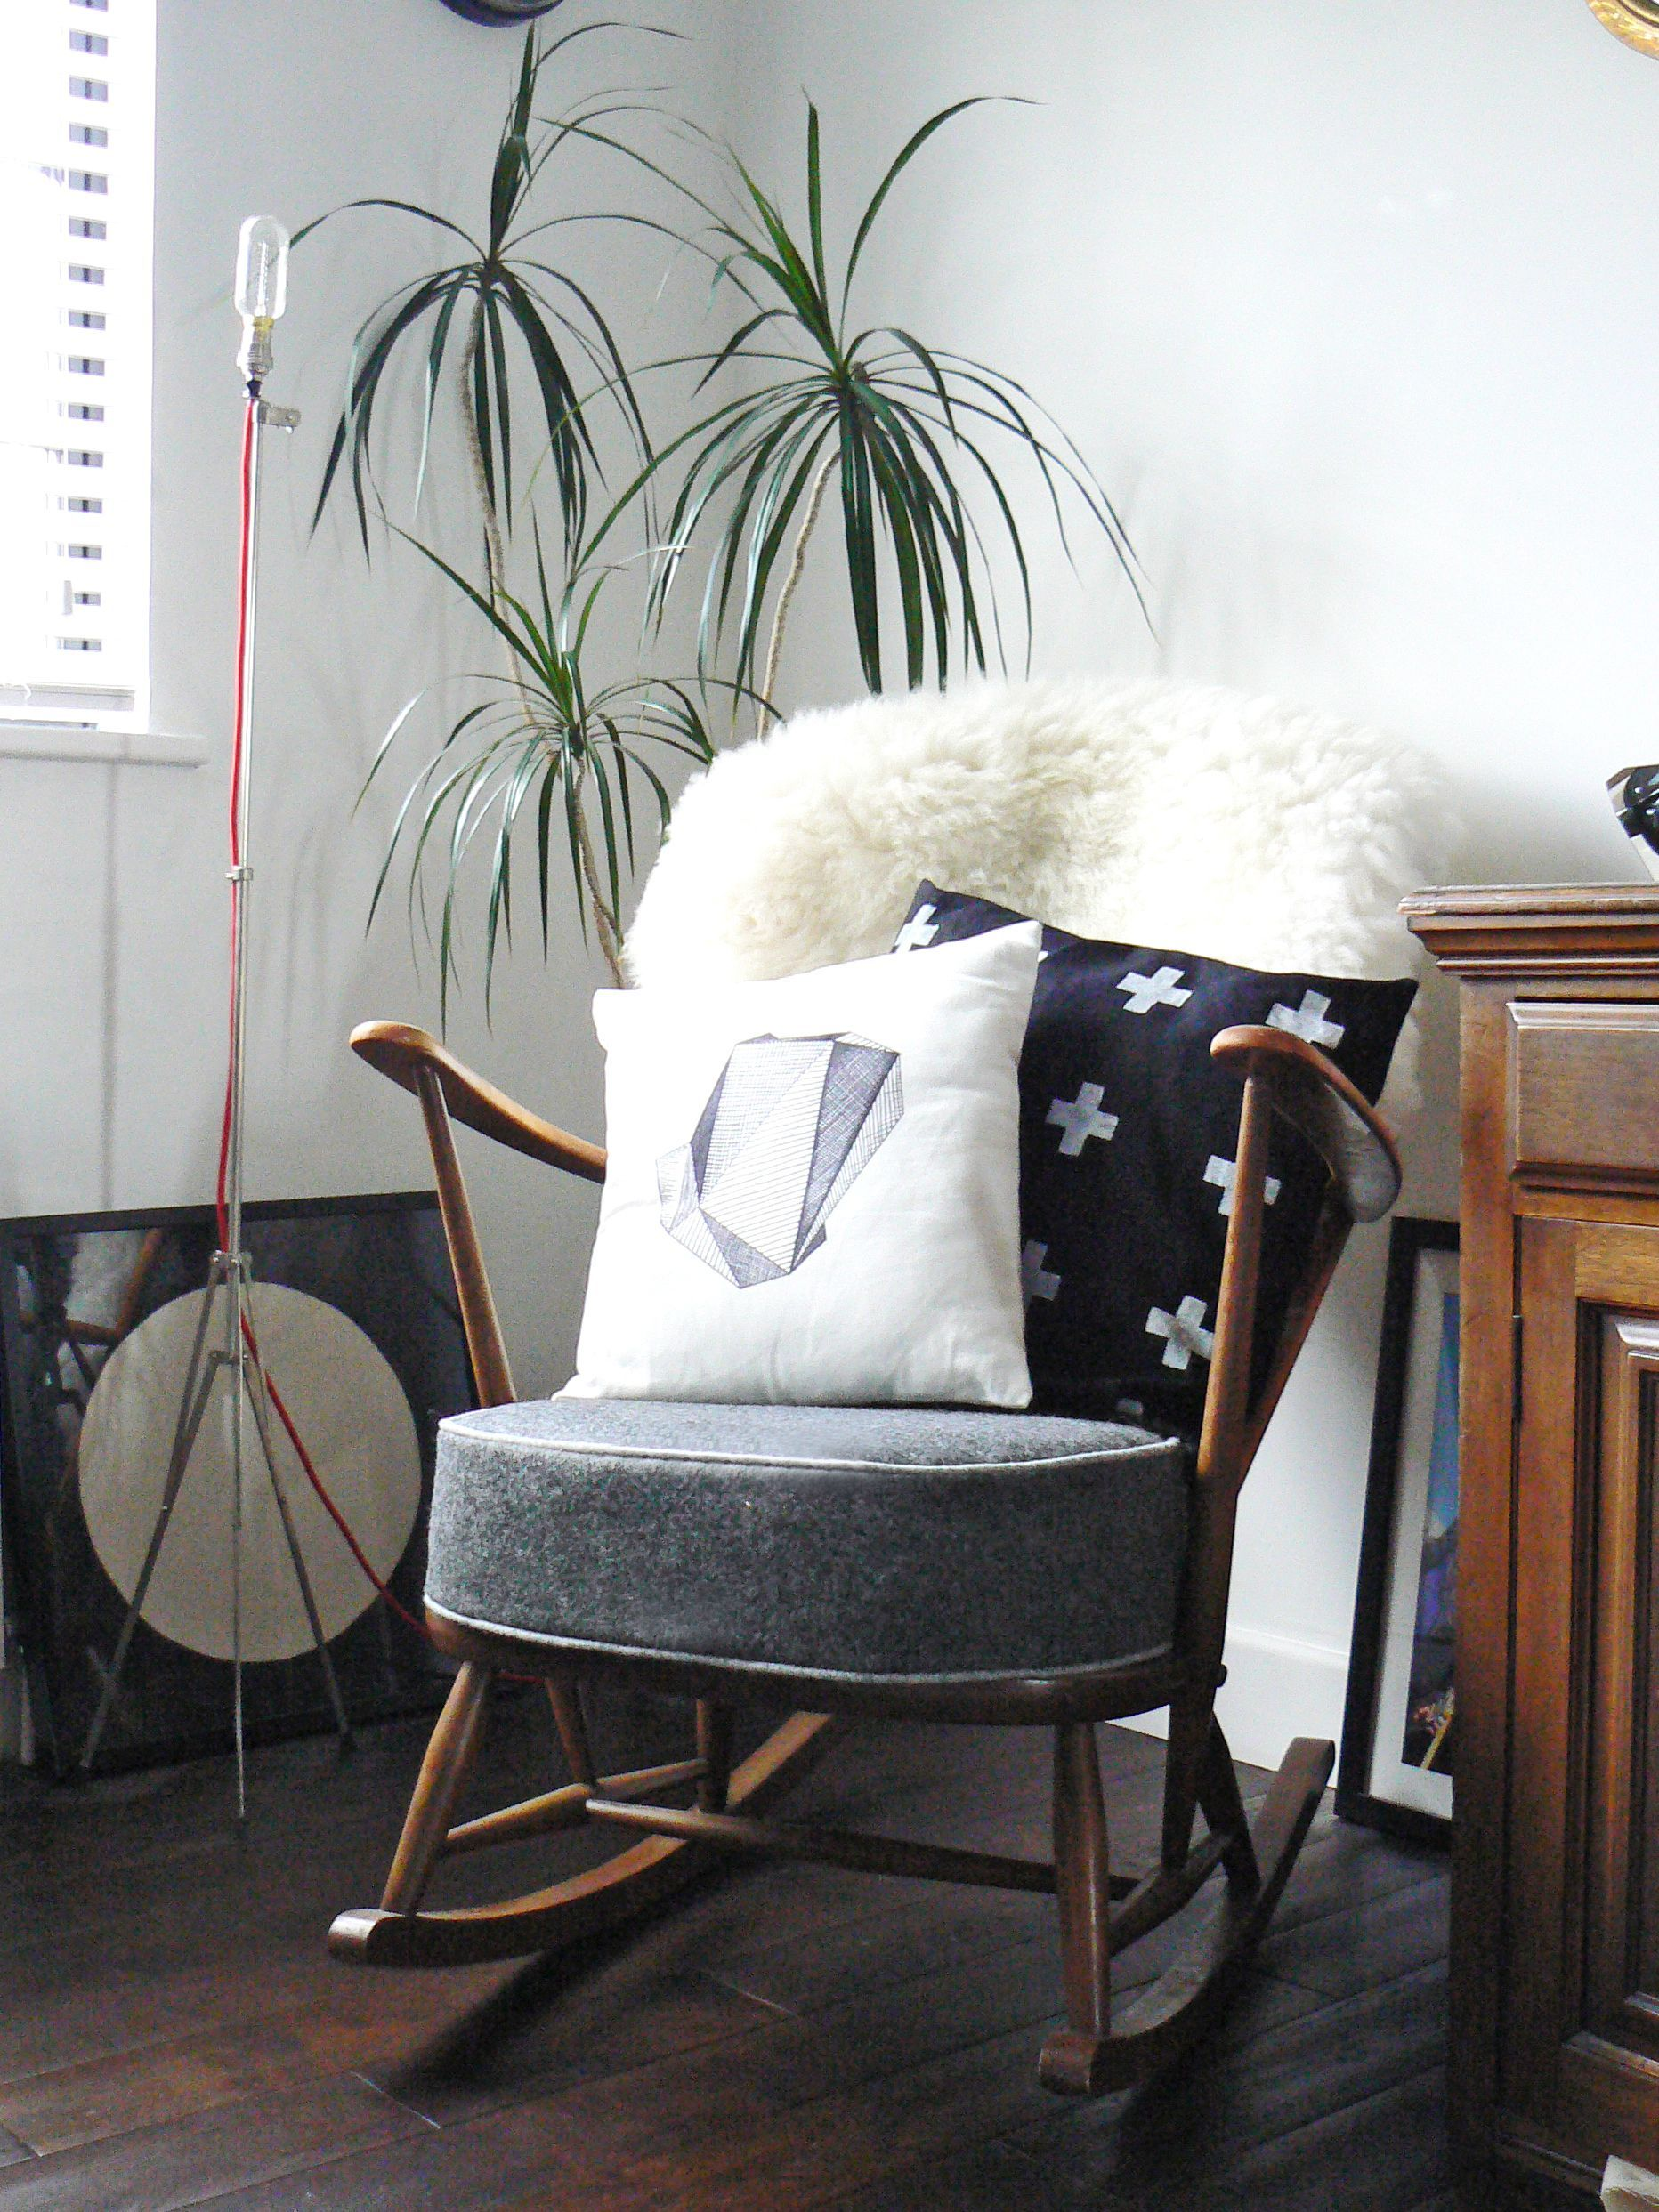 1960s Ercol Rocking Chair With Cushion Recovered In Grey